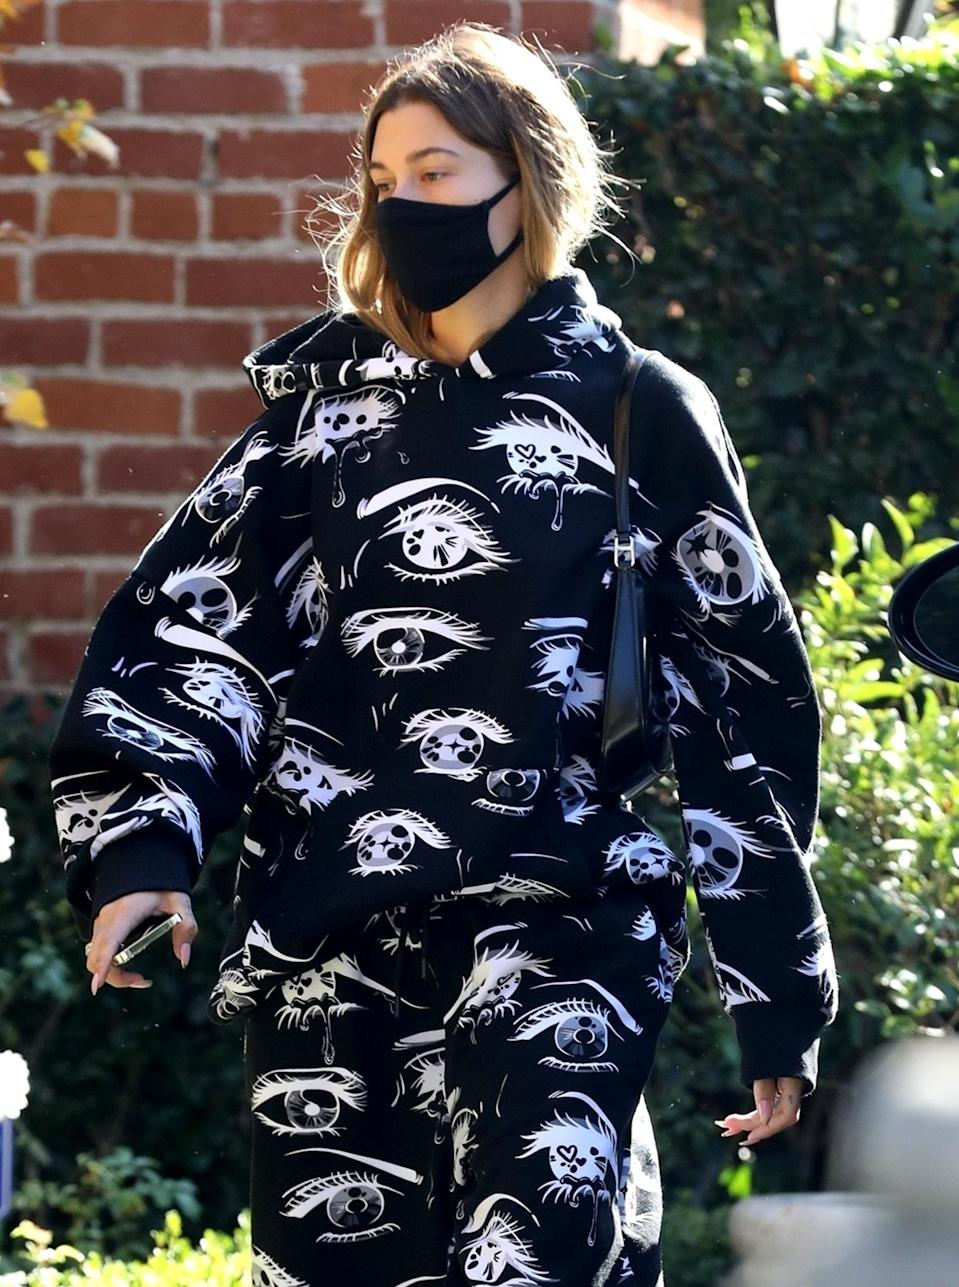 <p>Hailey Baldwin visits a friend on Wednesday in L.A., wearing a matching sweats set and a black mask.</p>